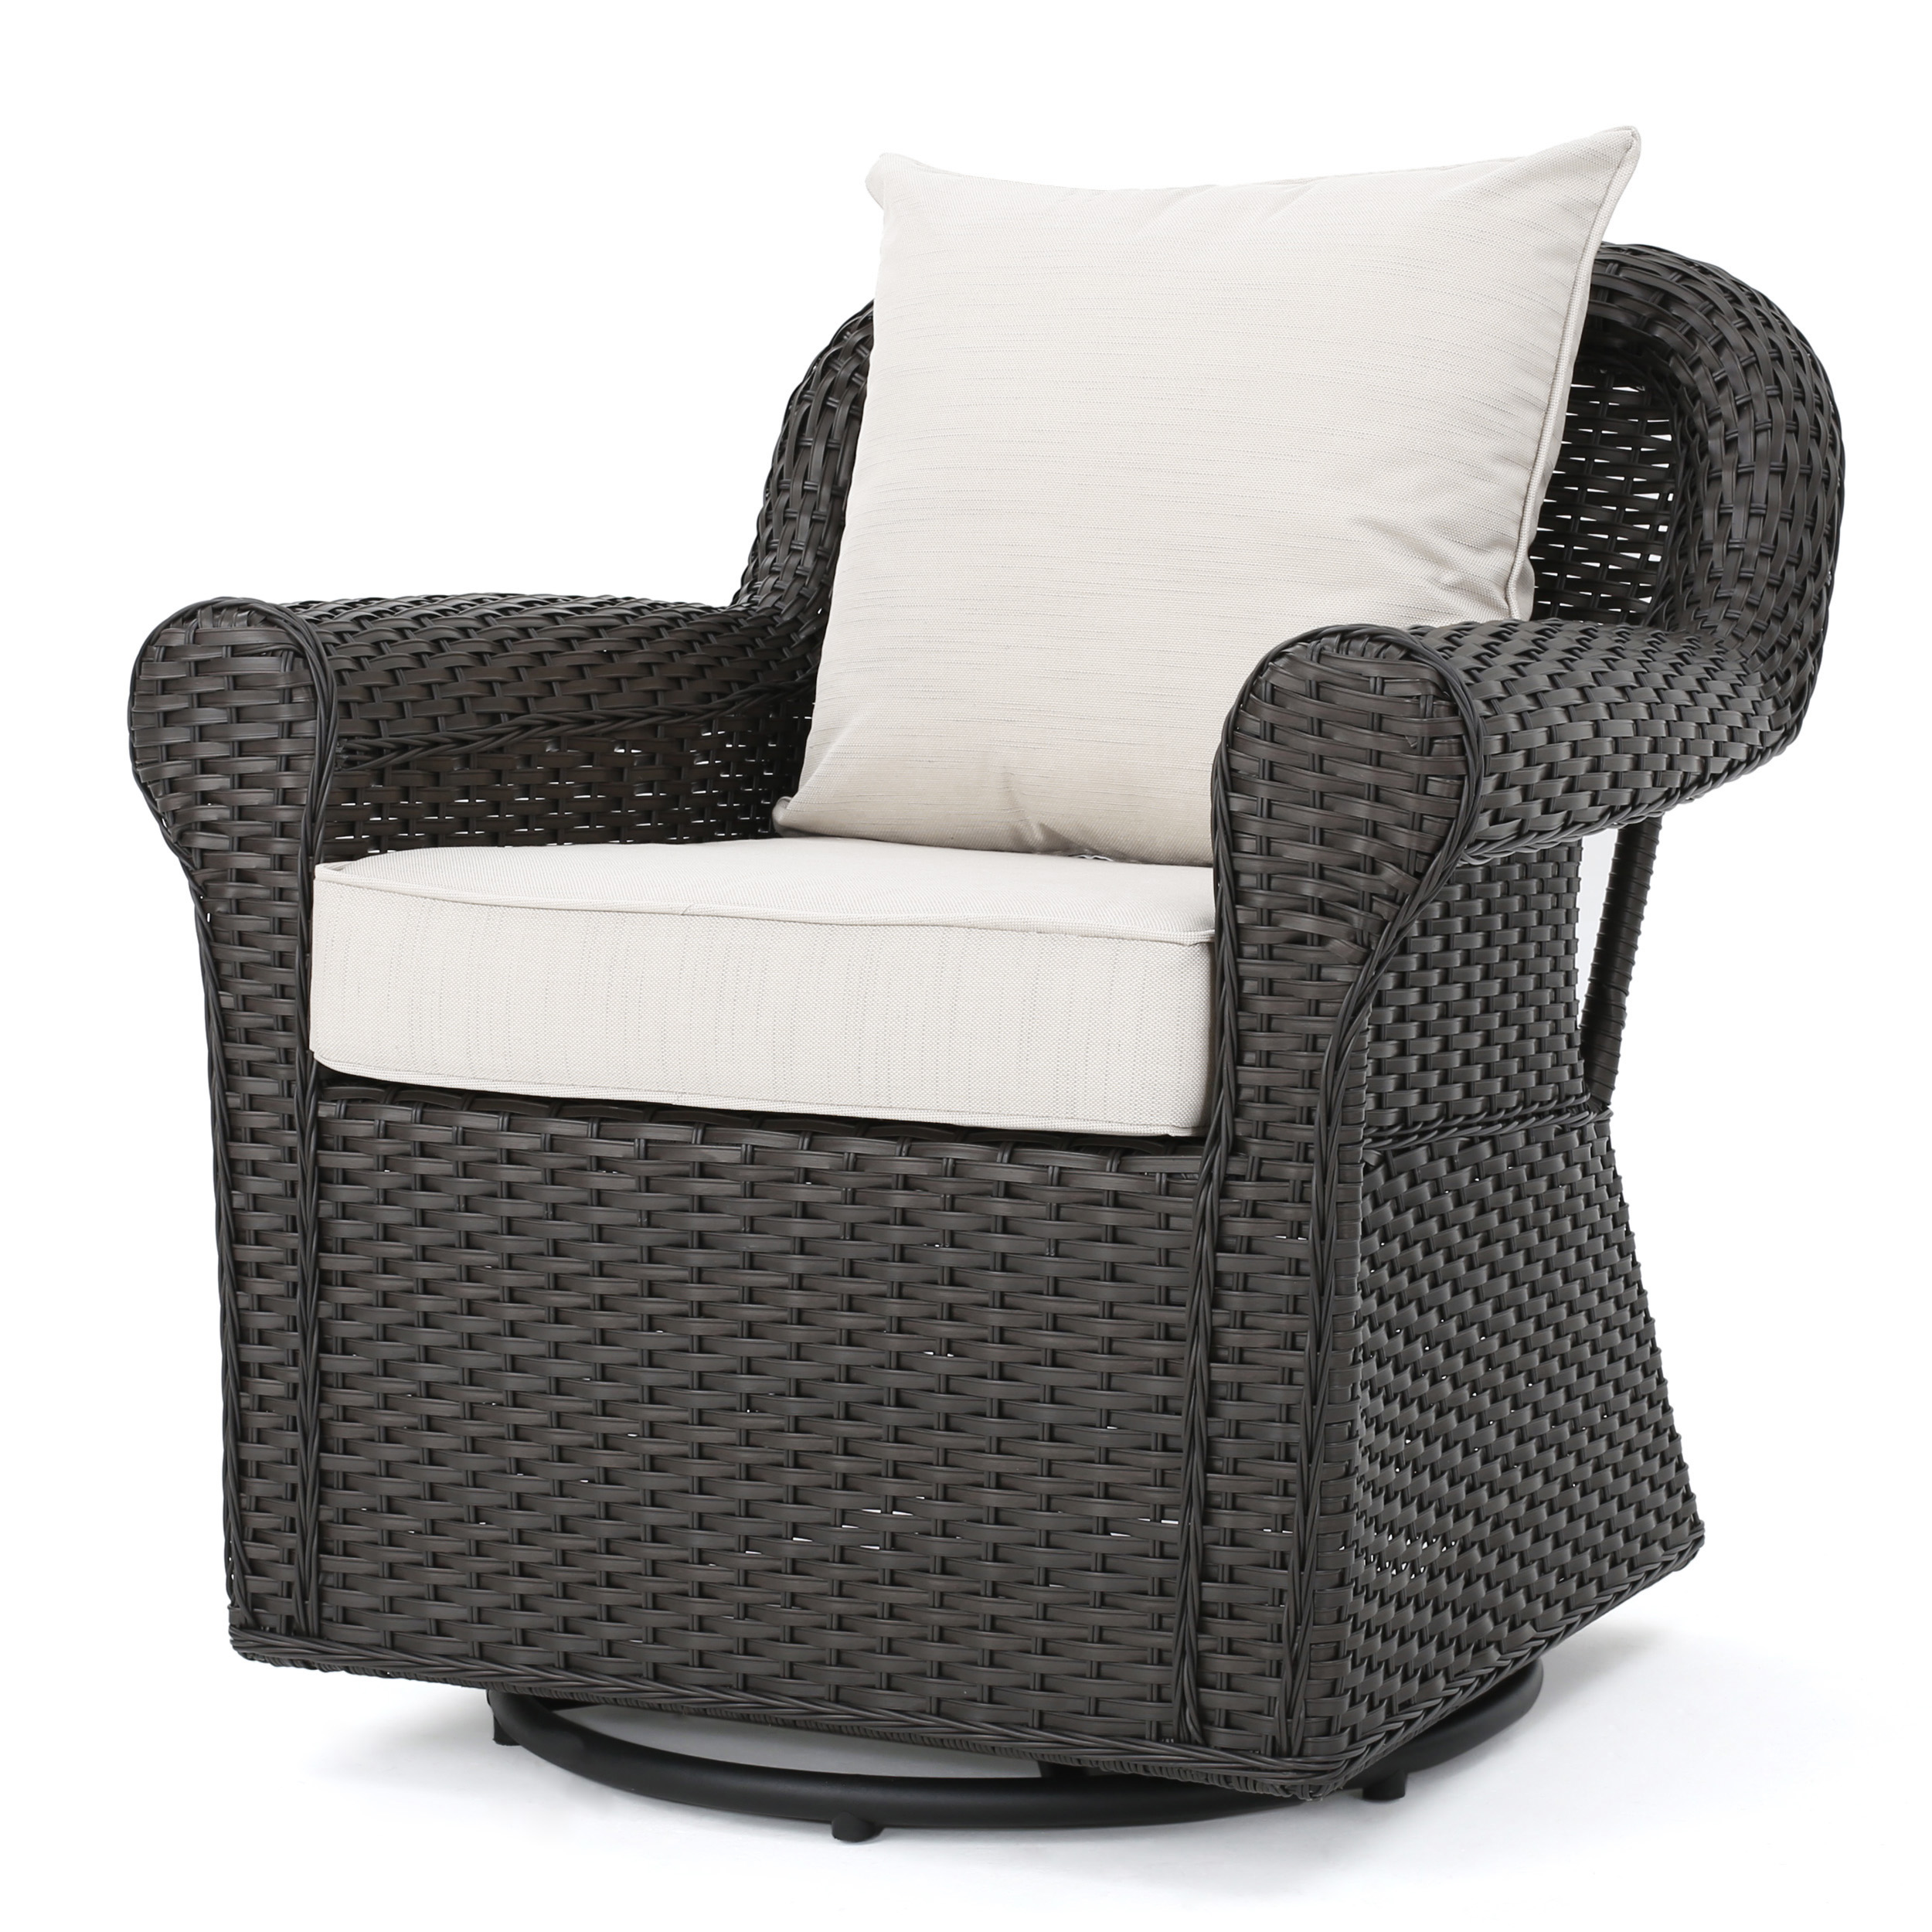 Charmant Admiral Outdoor Dark Brown Wicker Swivel Rocking Chair With Cushions, Beige    Walmart.com